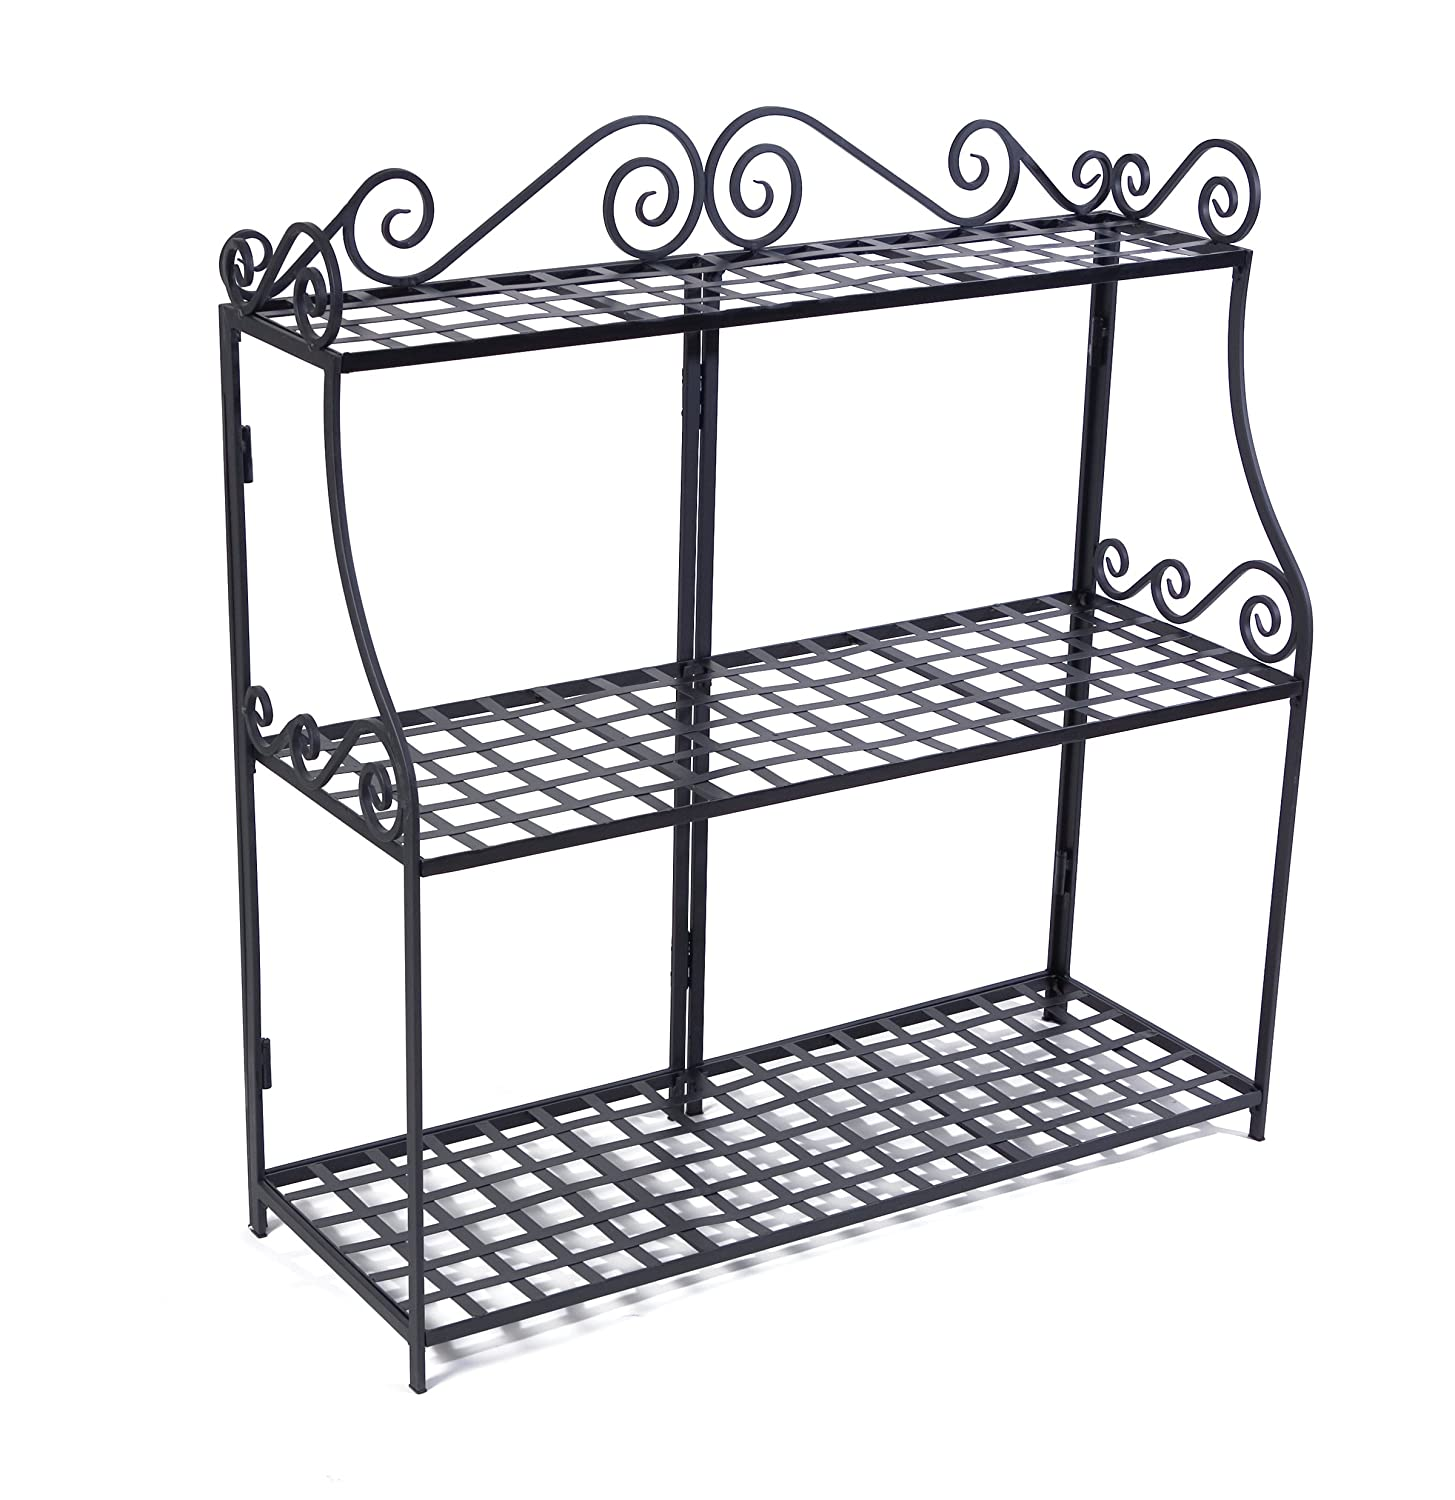 New black latticework forged steel 3 tier plant stand indoor outdoor patio yard ebay - Steel pot plant stands ...